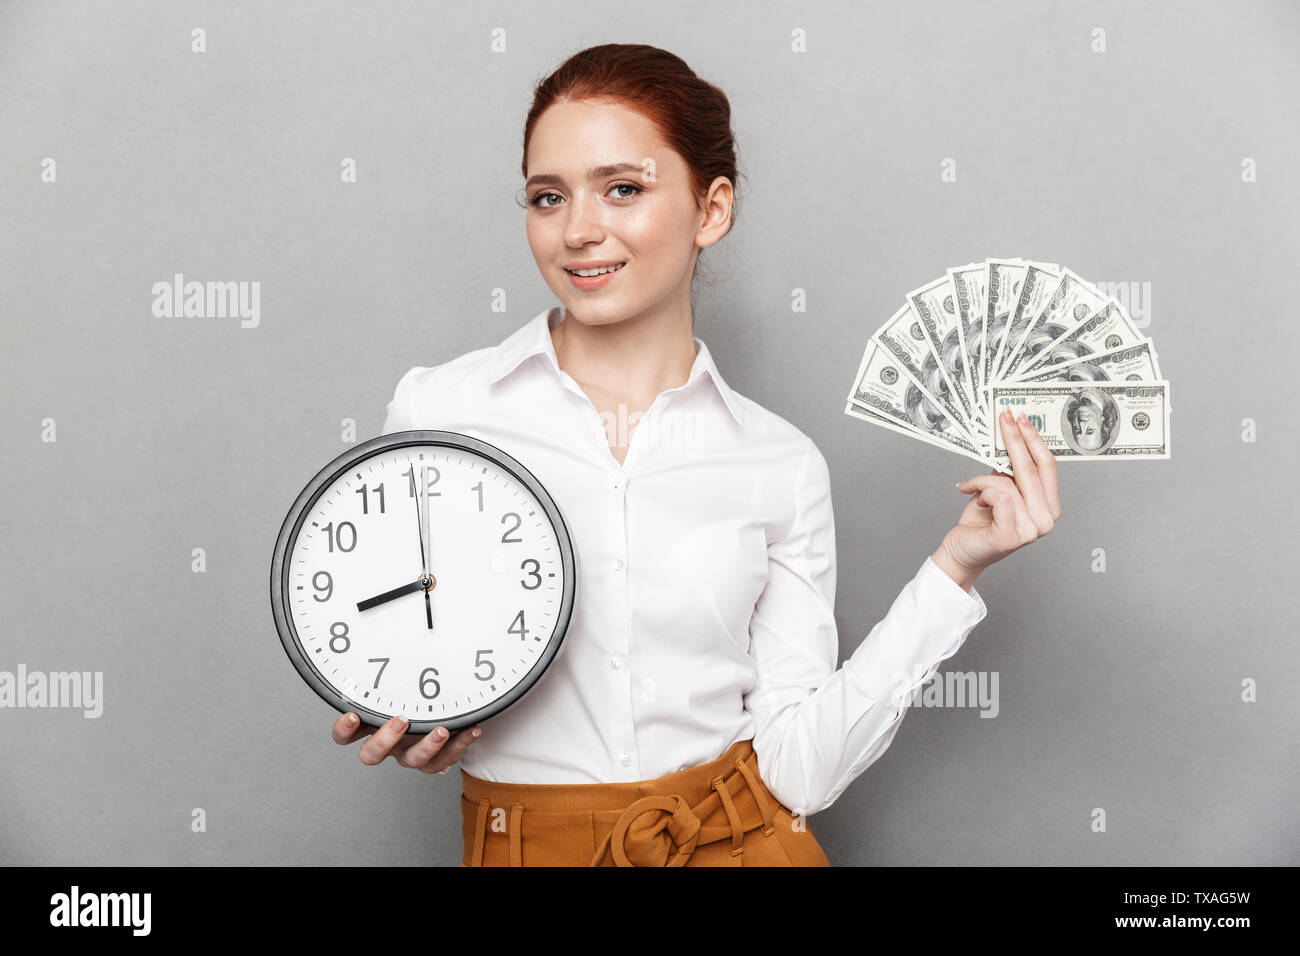 Image of cheerful redhead businesswoman 20s in formal wear holding big clock and bunch of money cash isolated over gray background - Stock Image